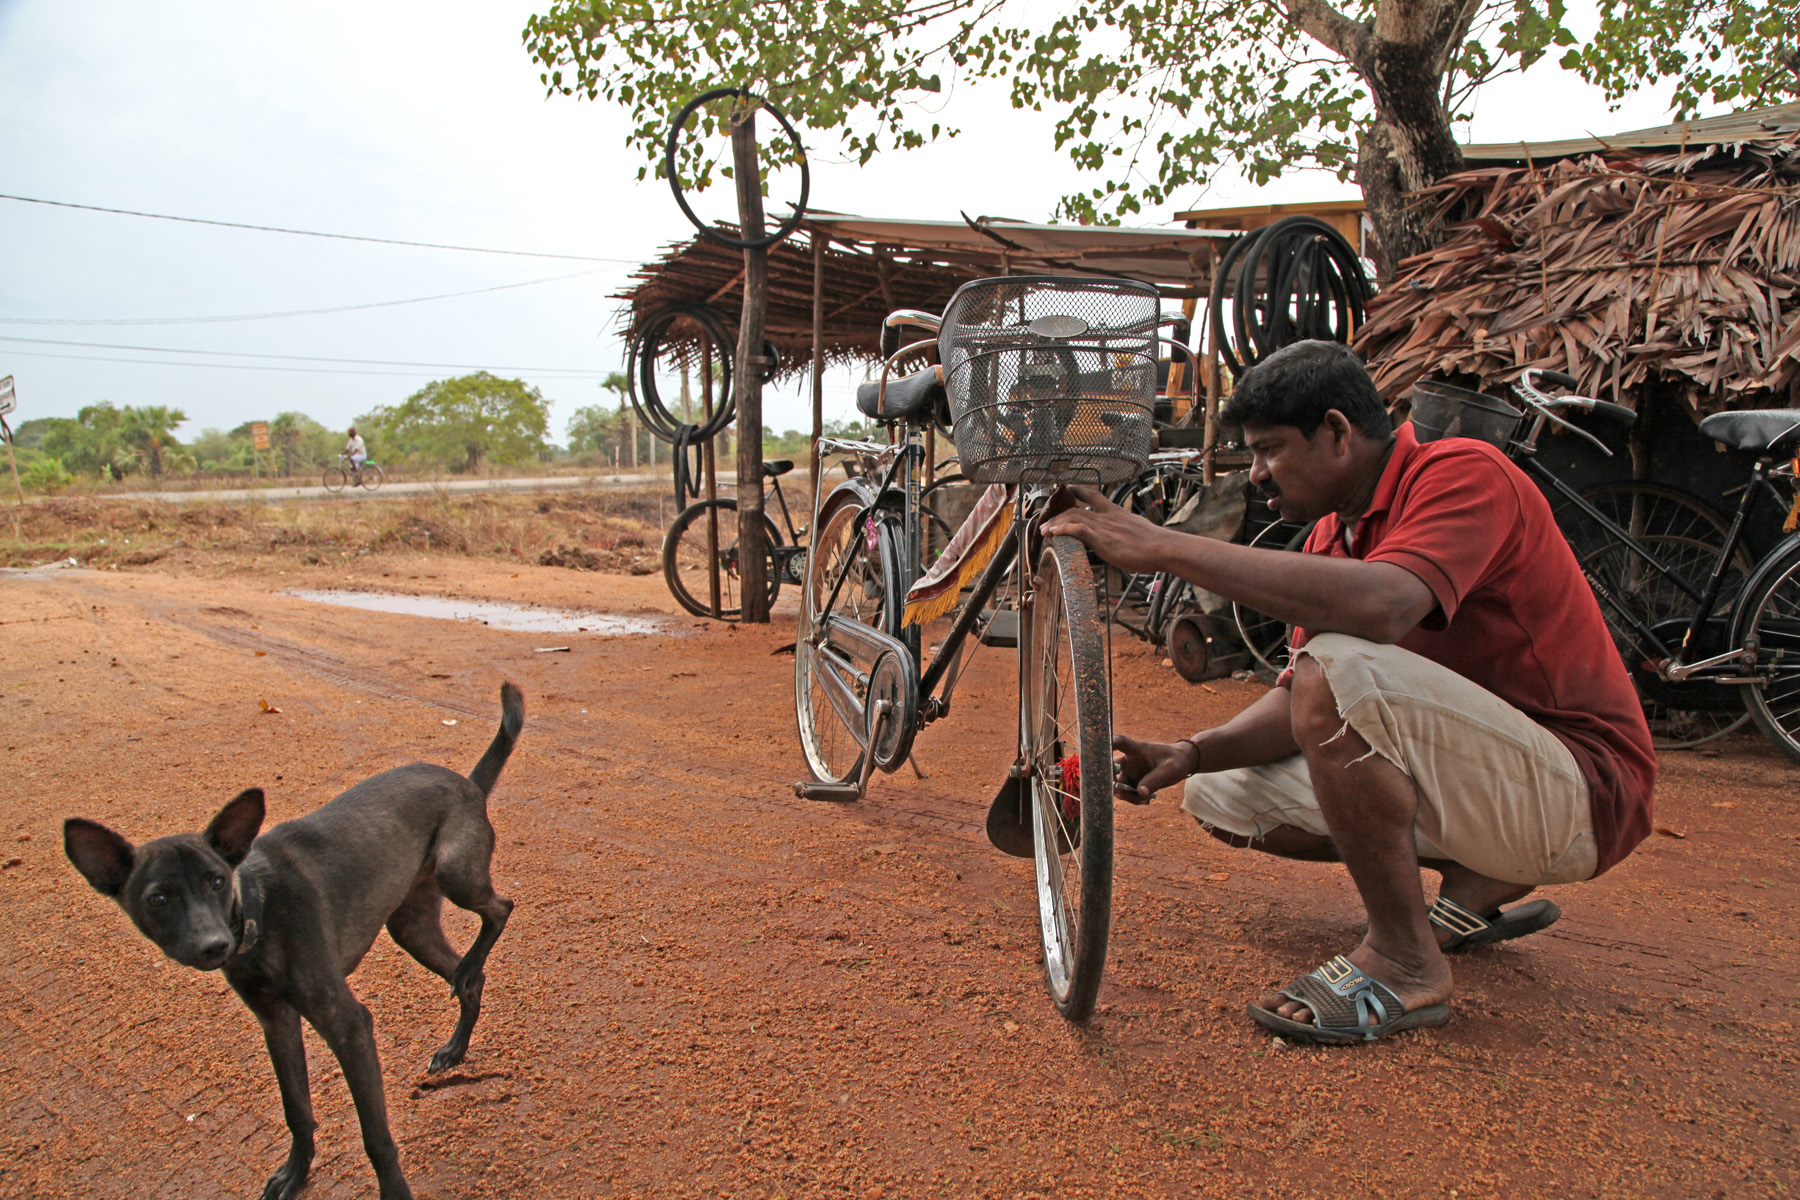 Bicycles are the most popular mode of transportation in the area and a young man earns a living by repairing them. He and his family live in the same shelter